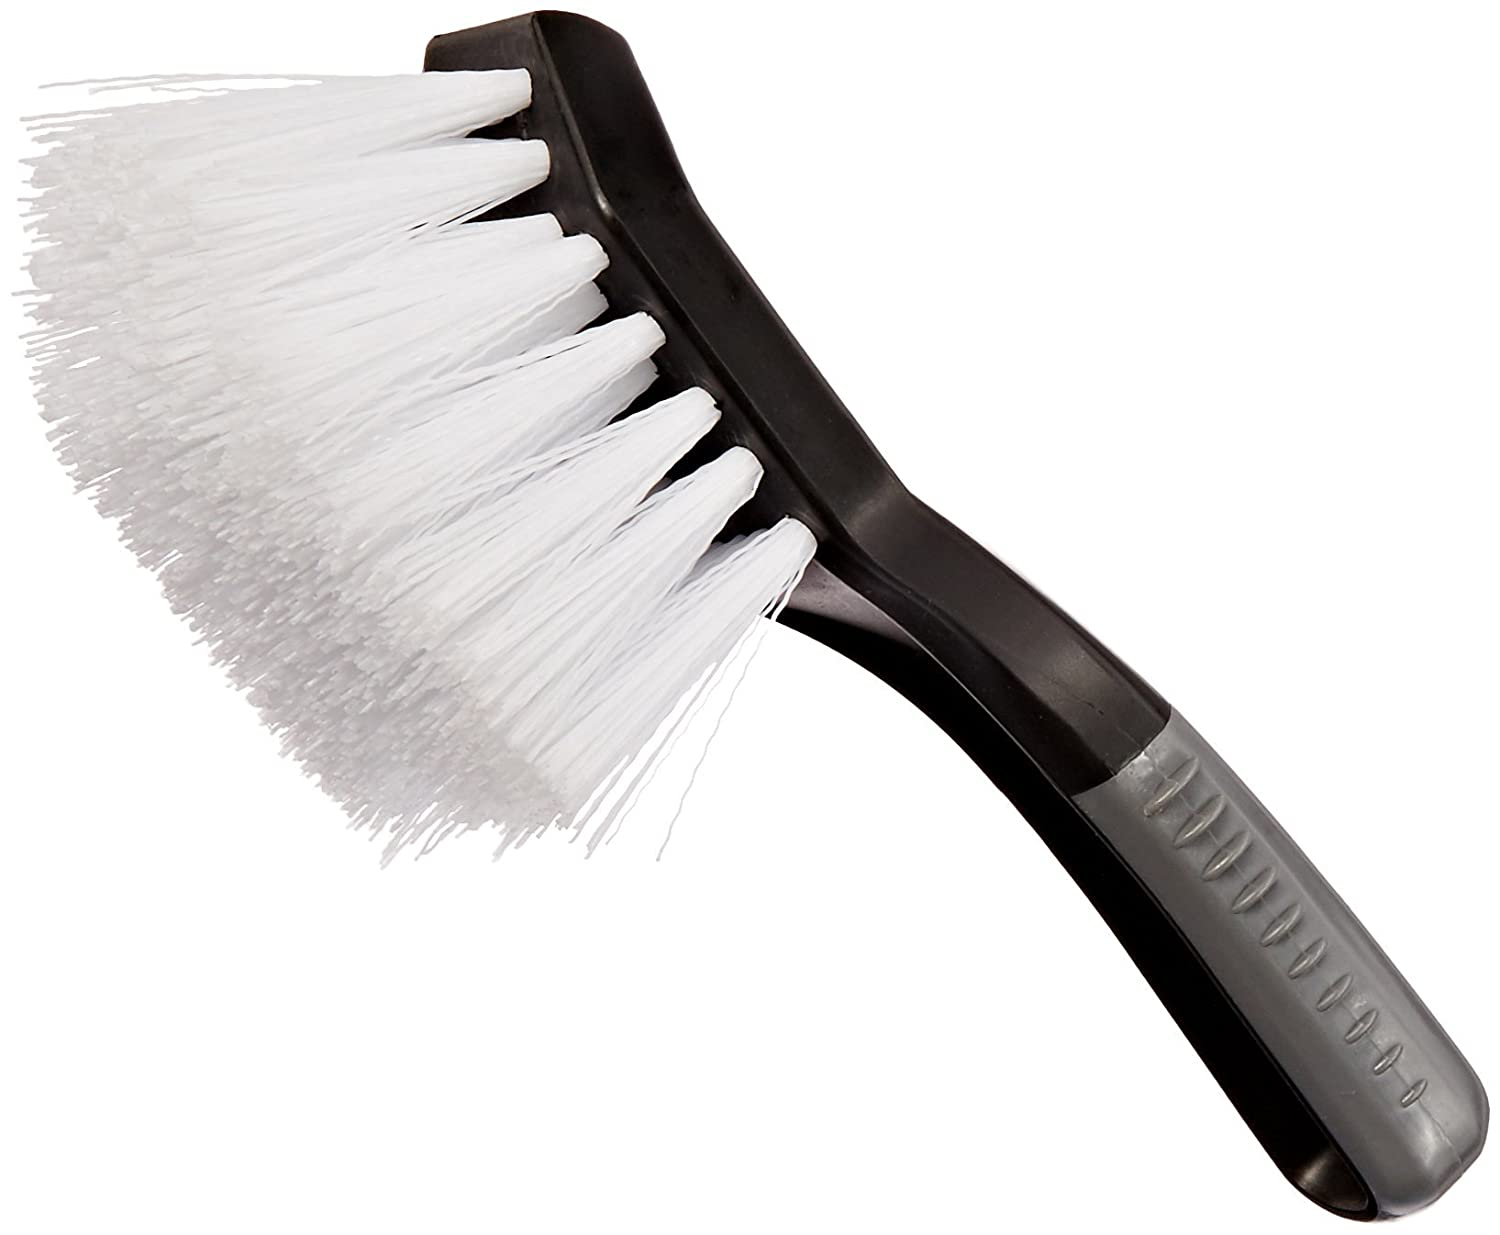 Carrand 93036 Tire and Grille Brush